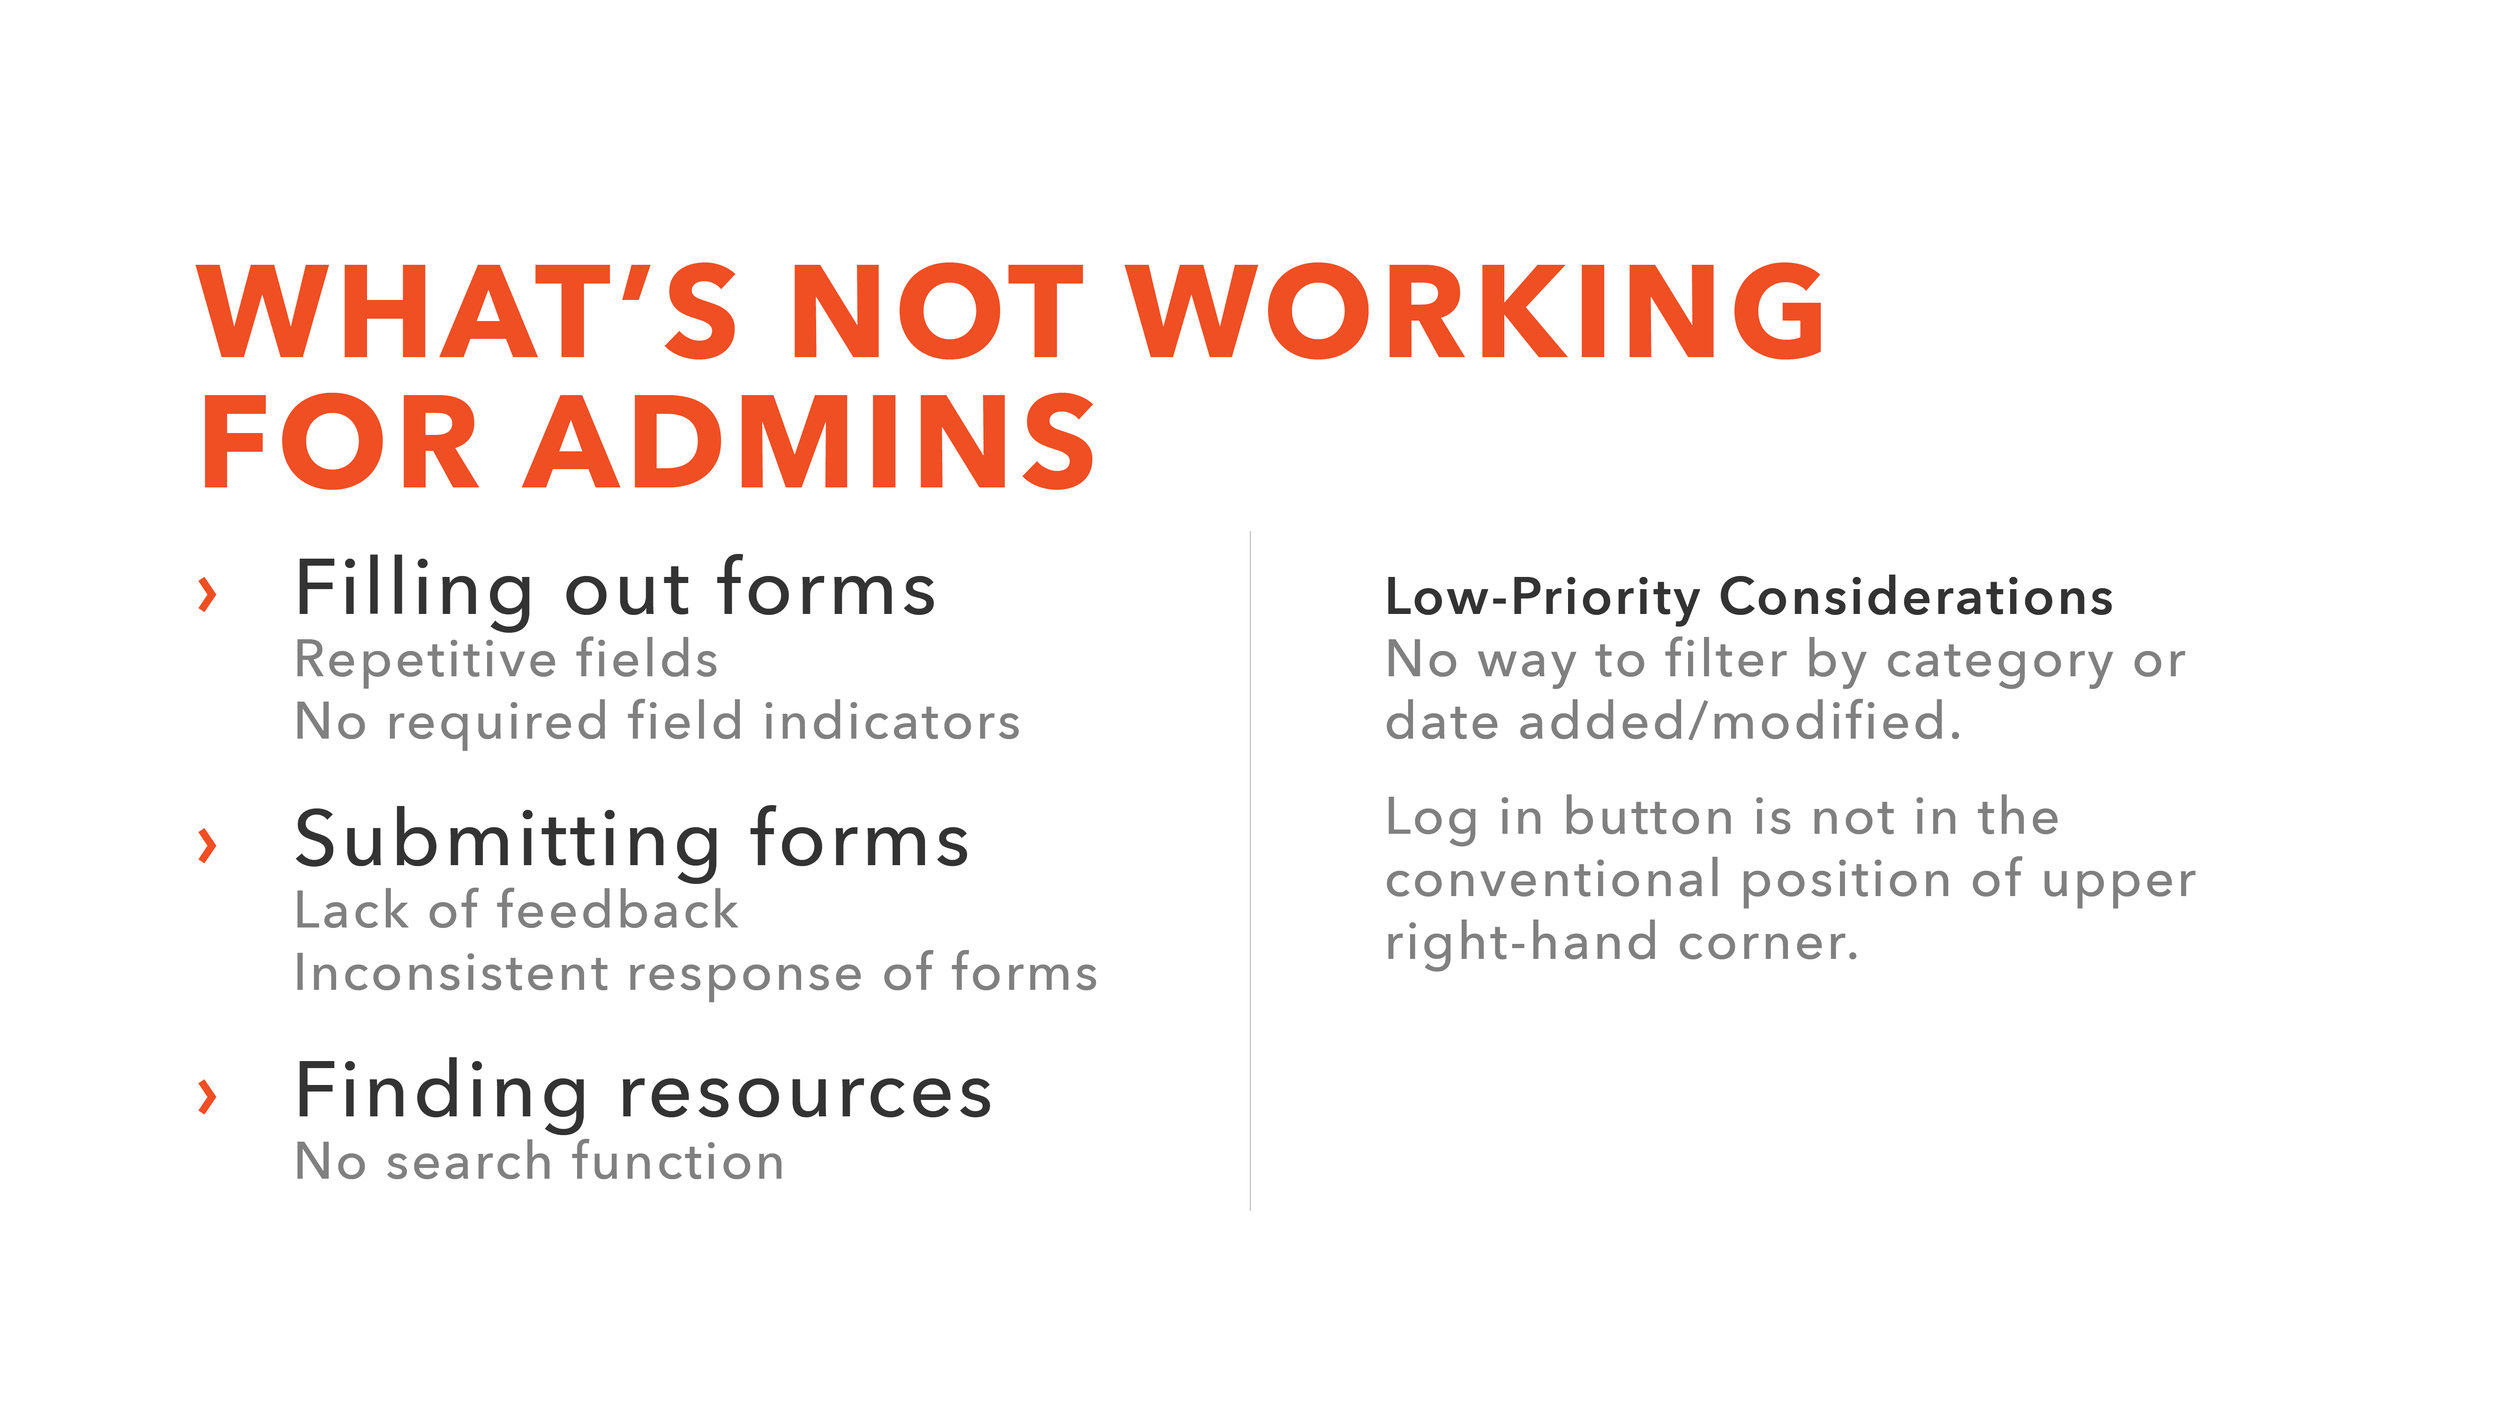 Findings Recommendations Report32.png